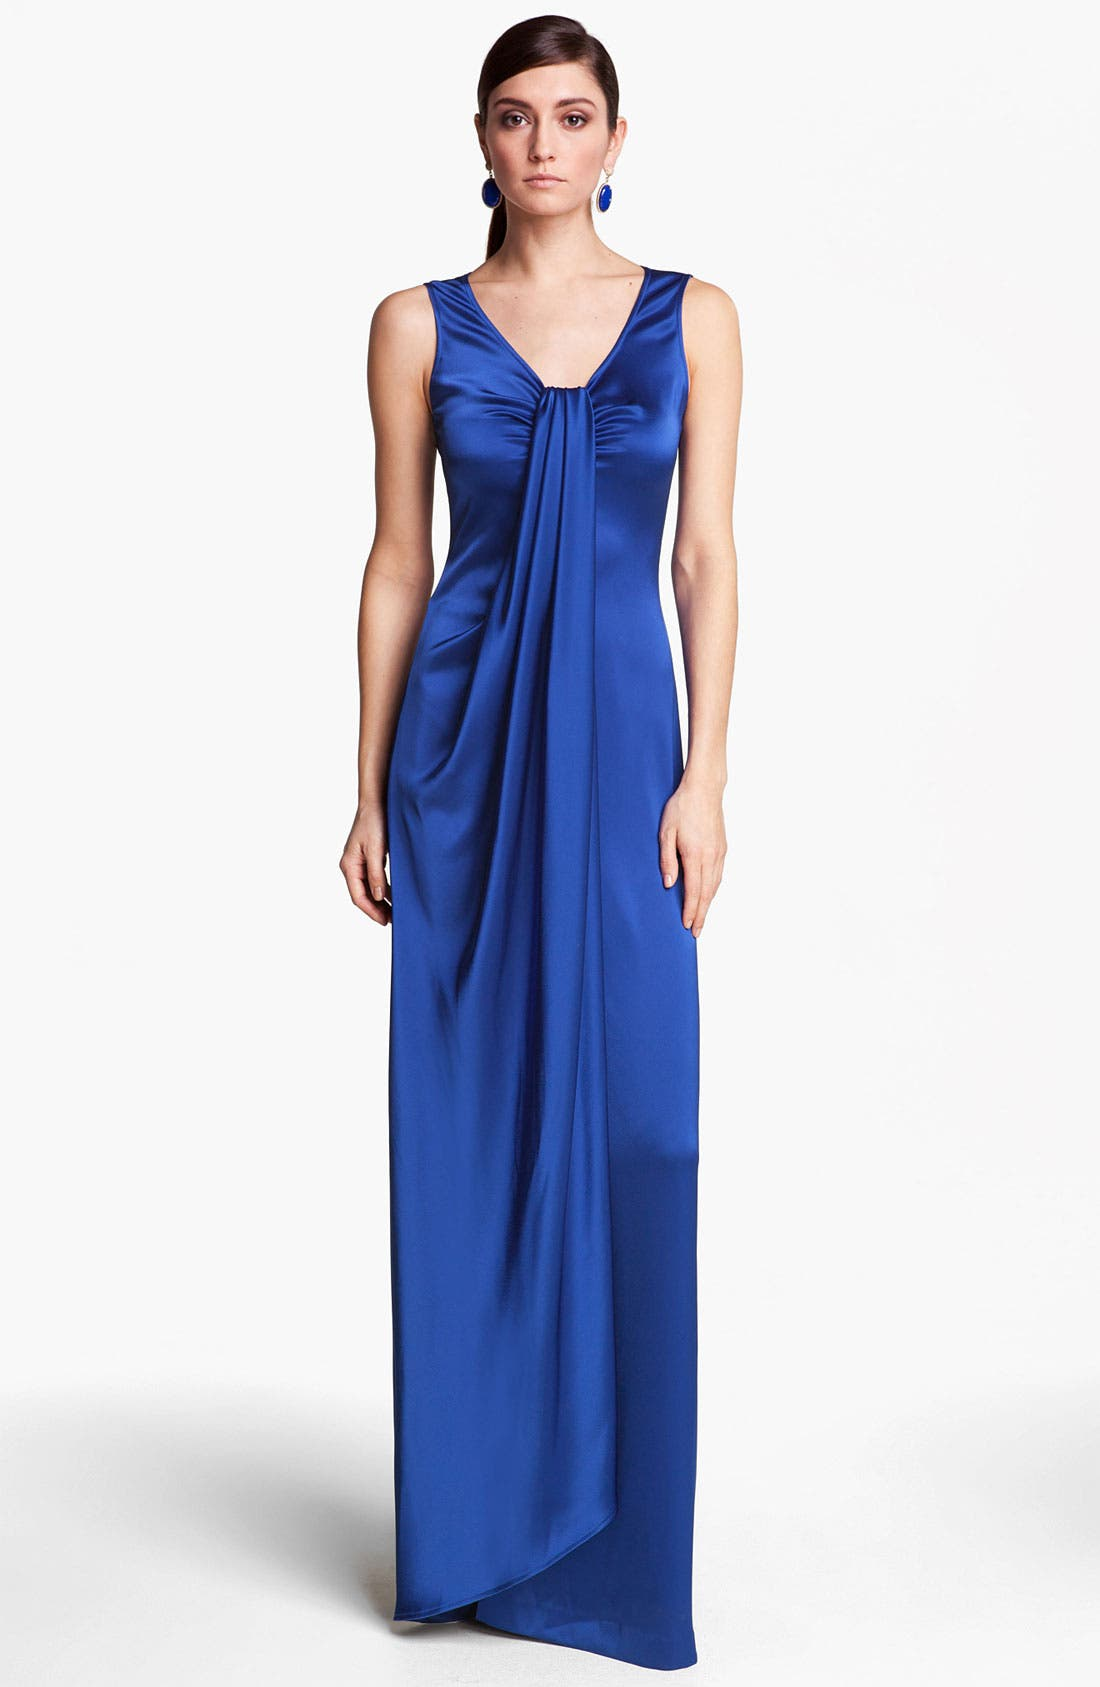 Main Image - St. John Collection Draped Liquid Satin Gown